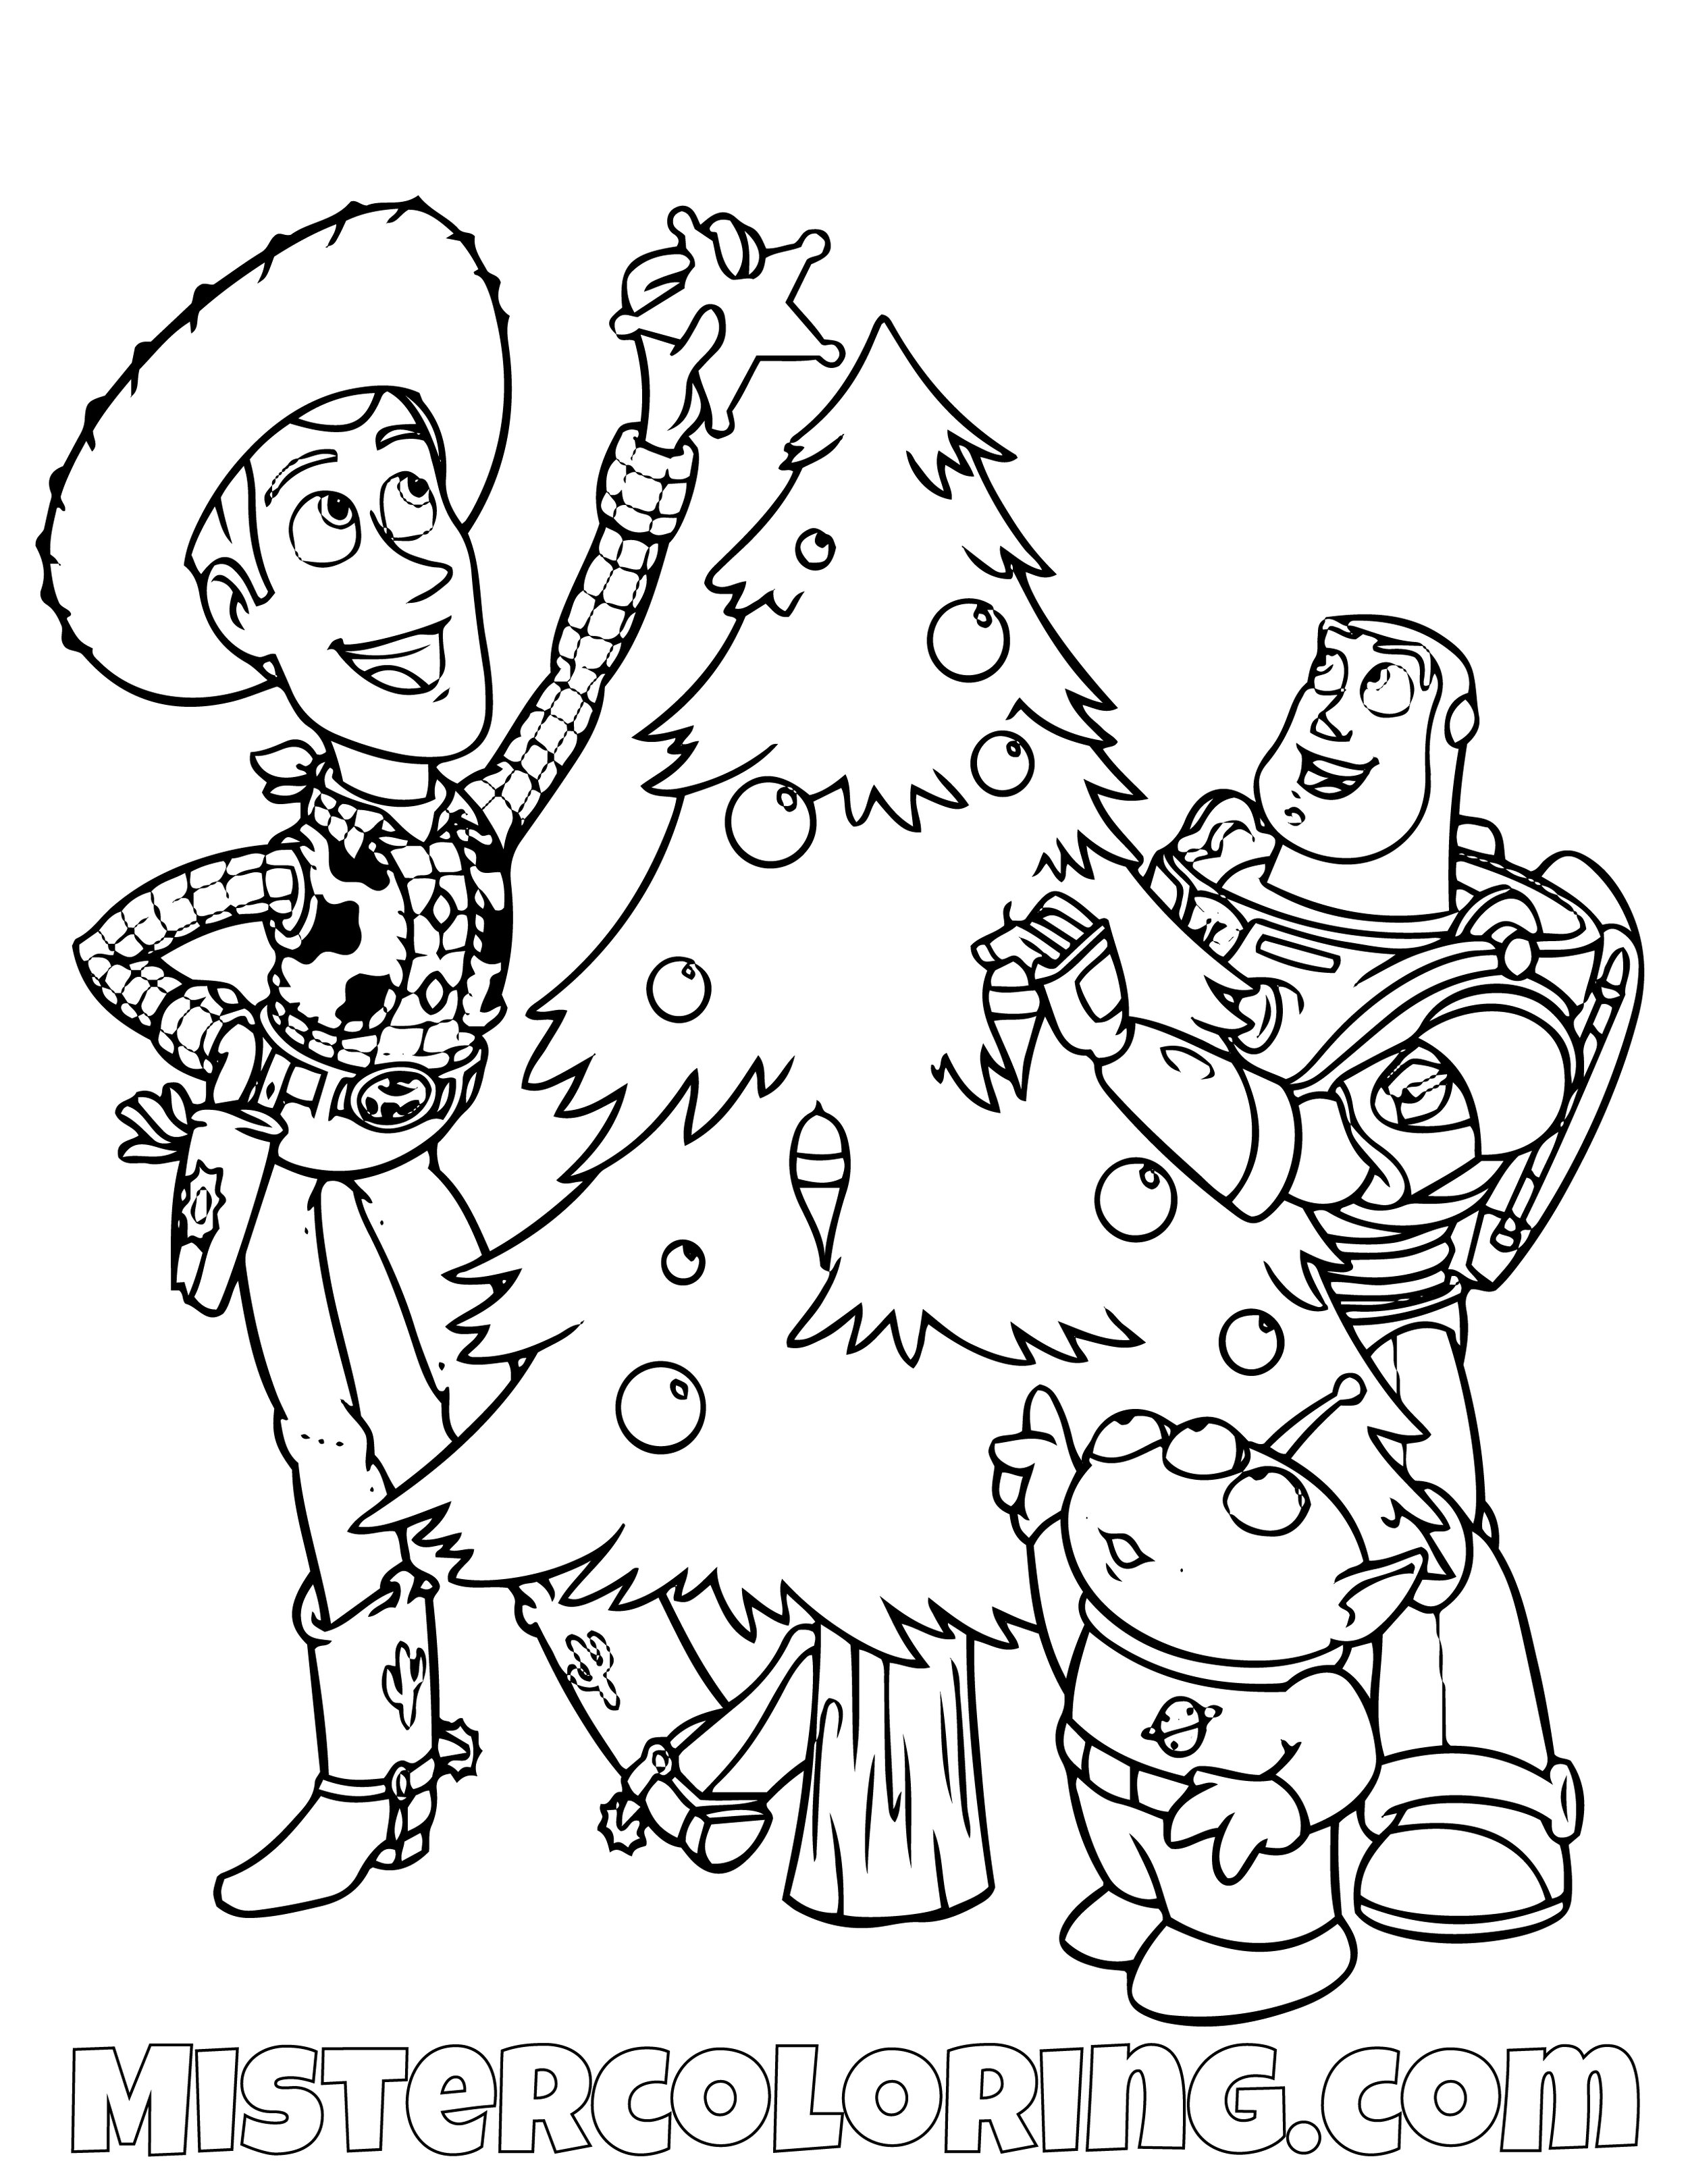 Sheriff Woody Alien And Buzz Lightyear With Christmas Tree Toy Story Coloring Page